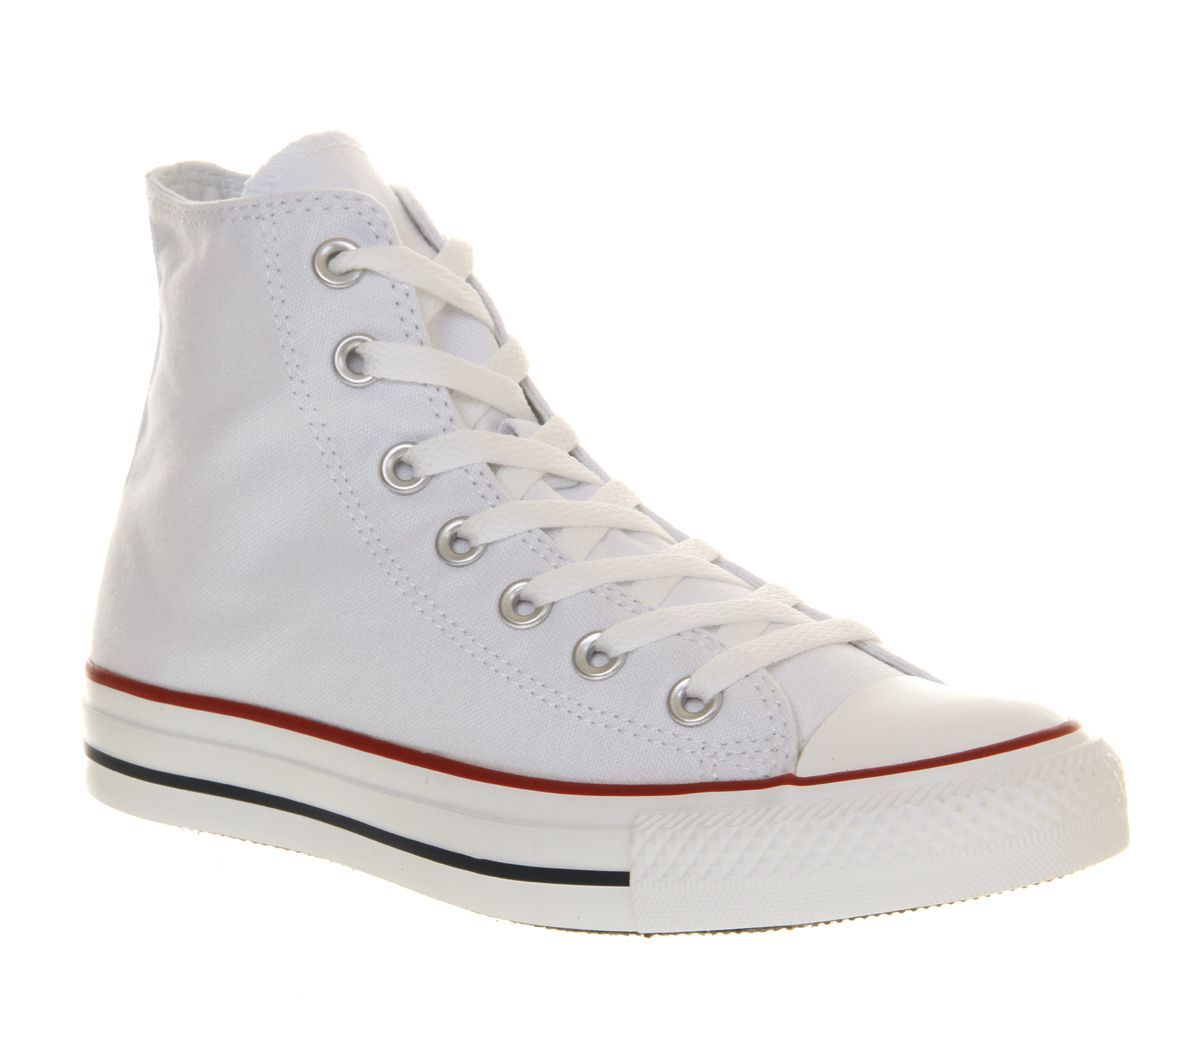 Converse Converse all star hi trainers White